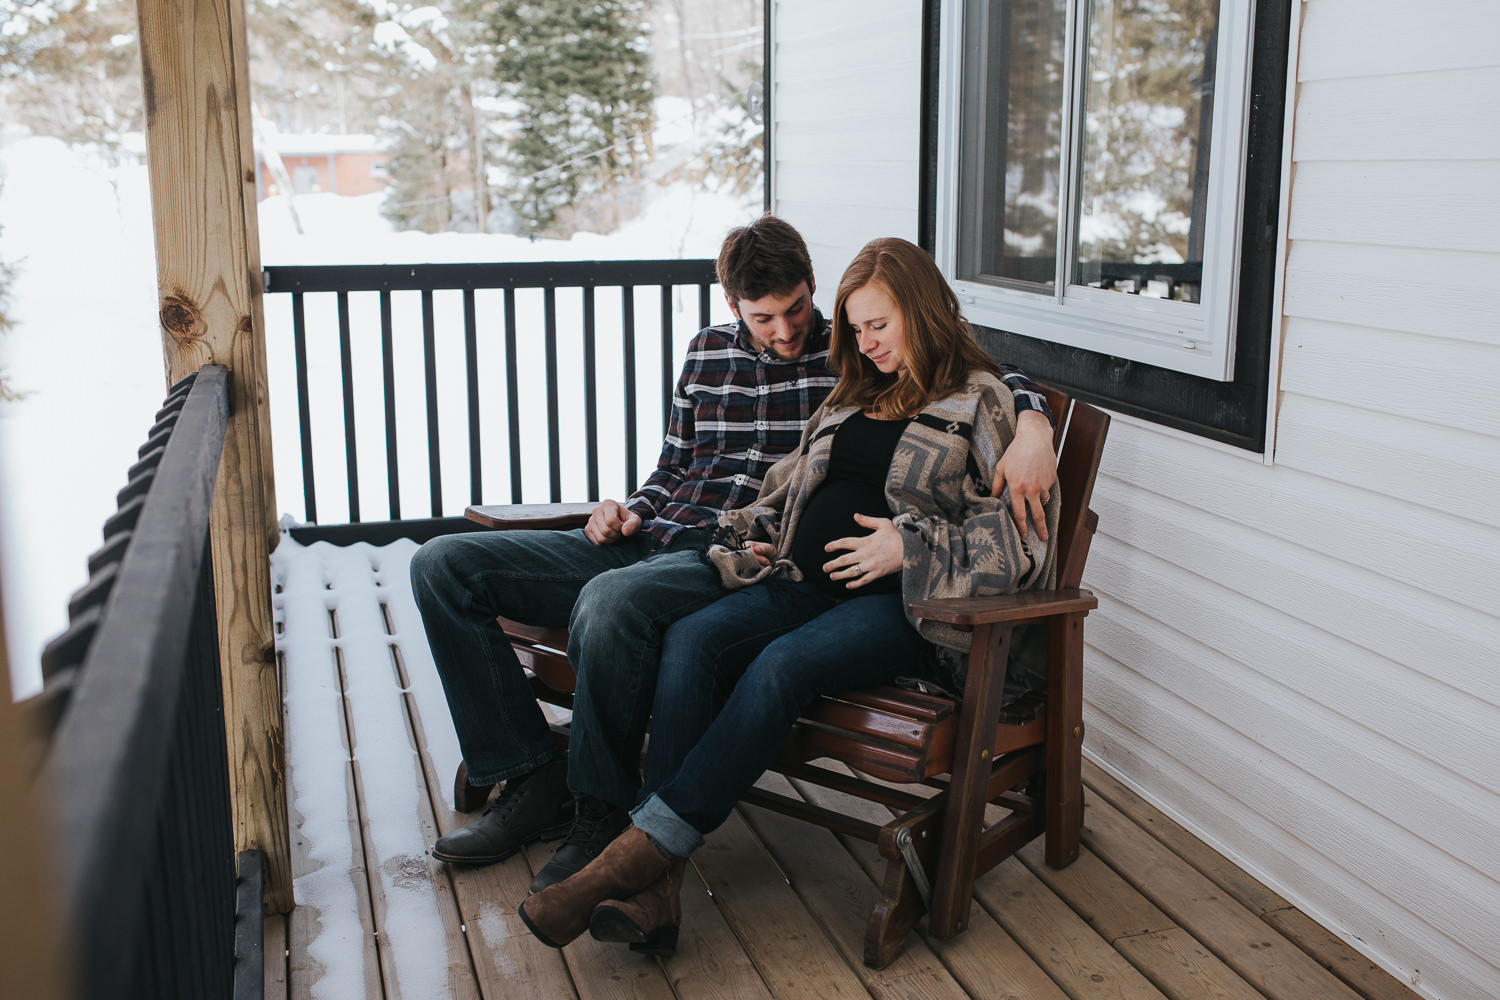 parents to be sitting on front porch looking at wife's baby bump - Newmarket lifestyle photography